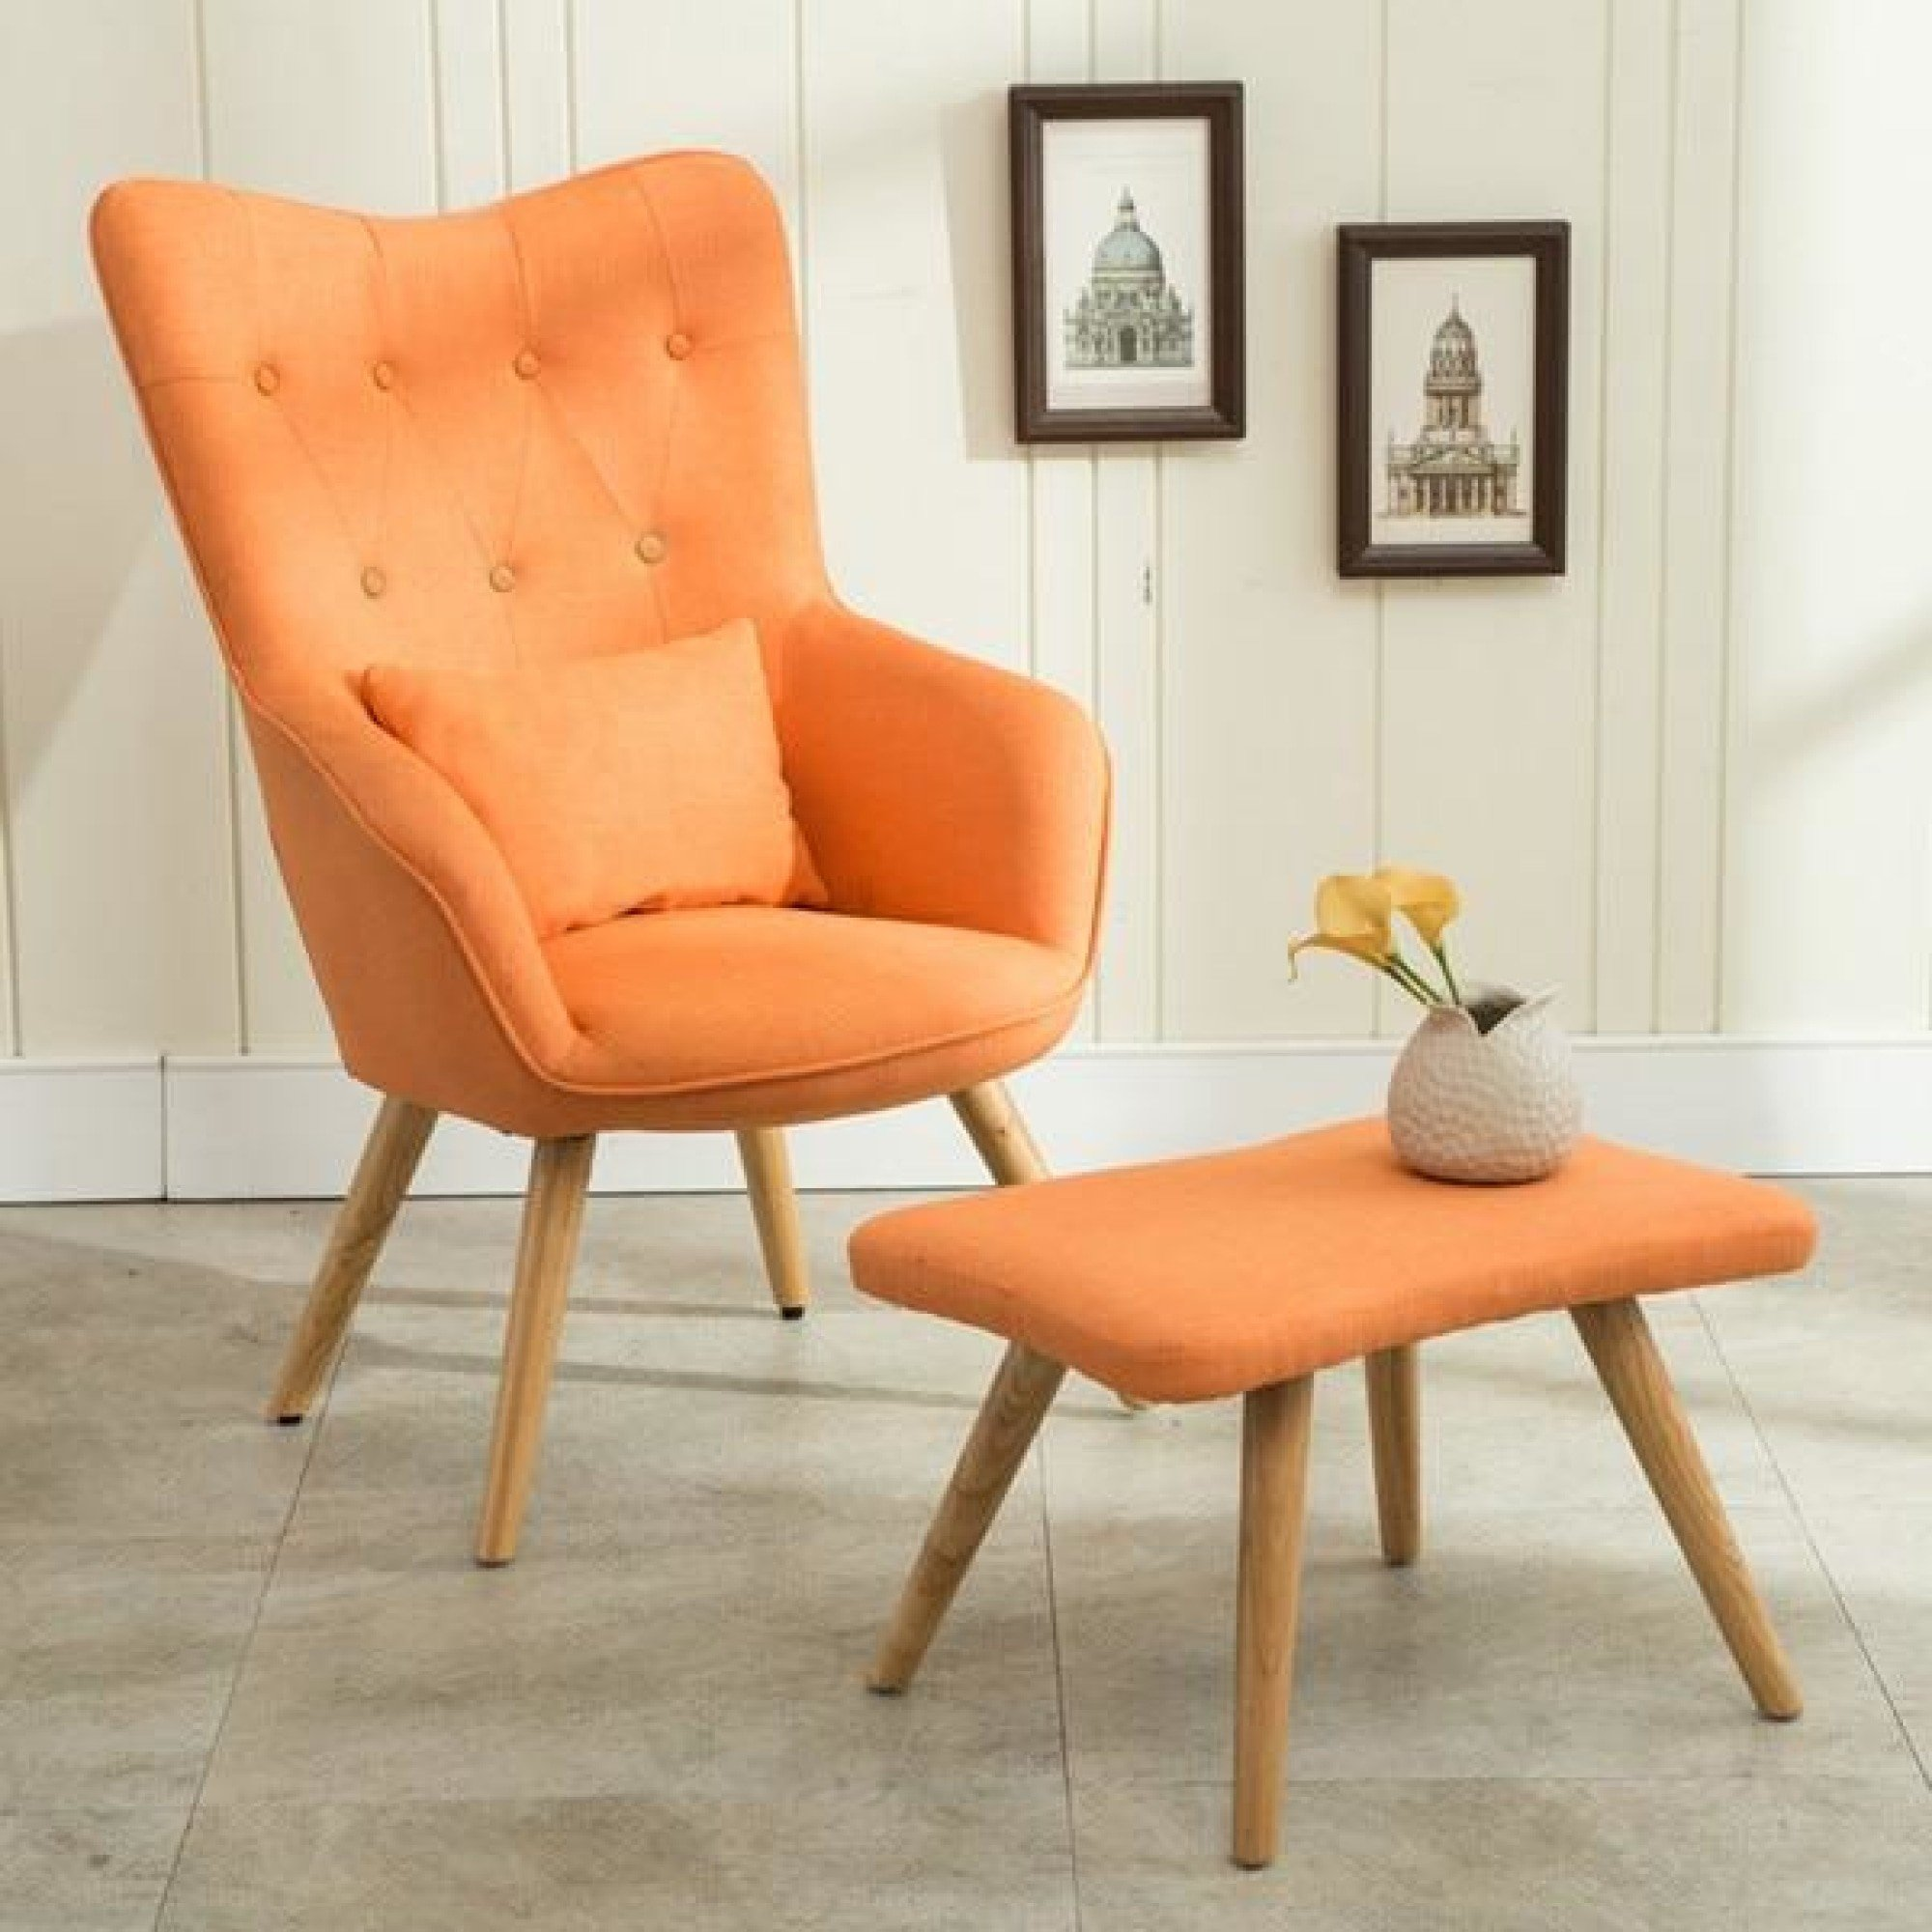 Modern Leisure Chair With Ottoman Living room upholstery